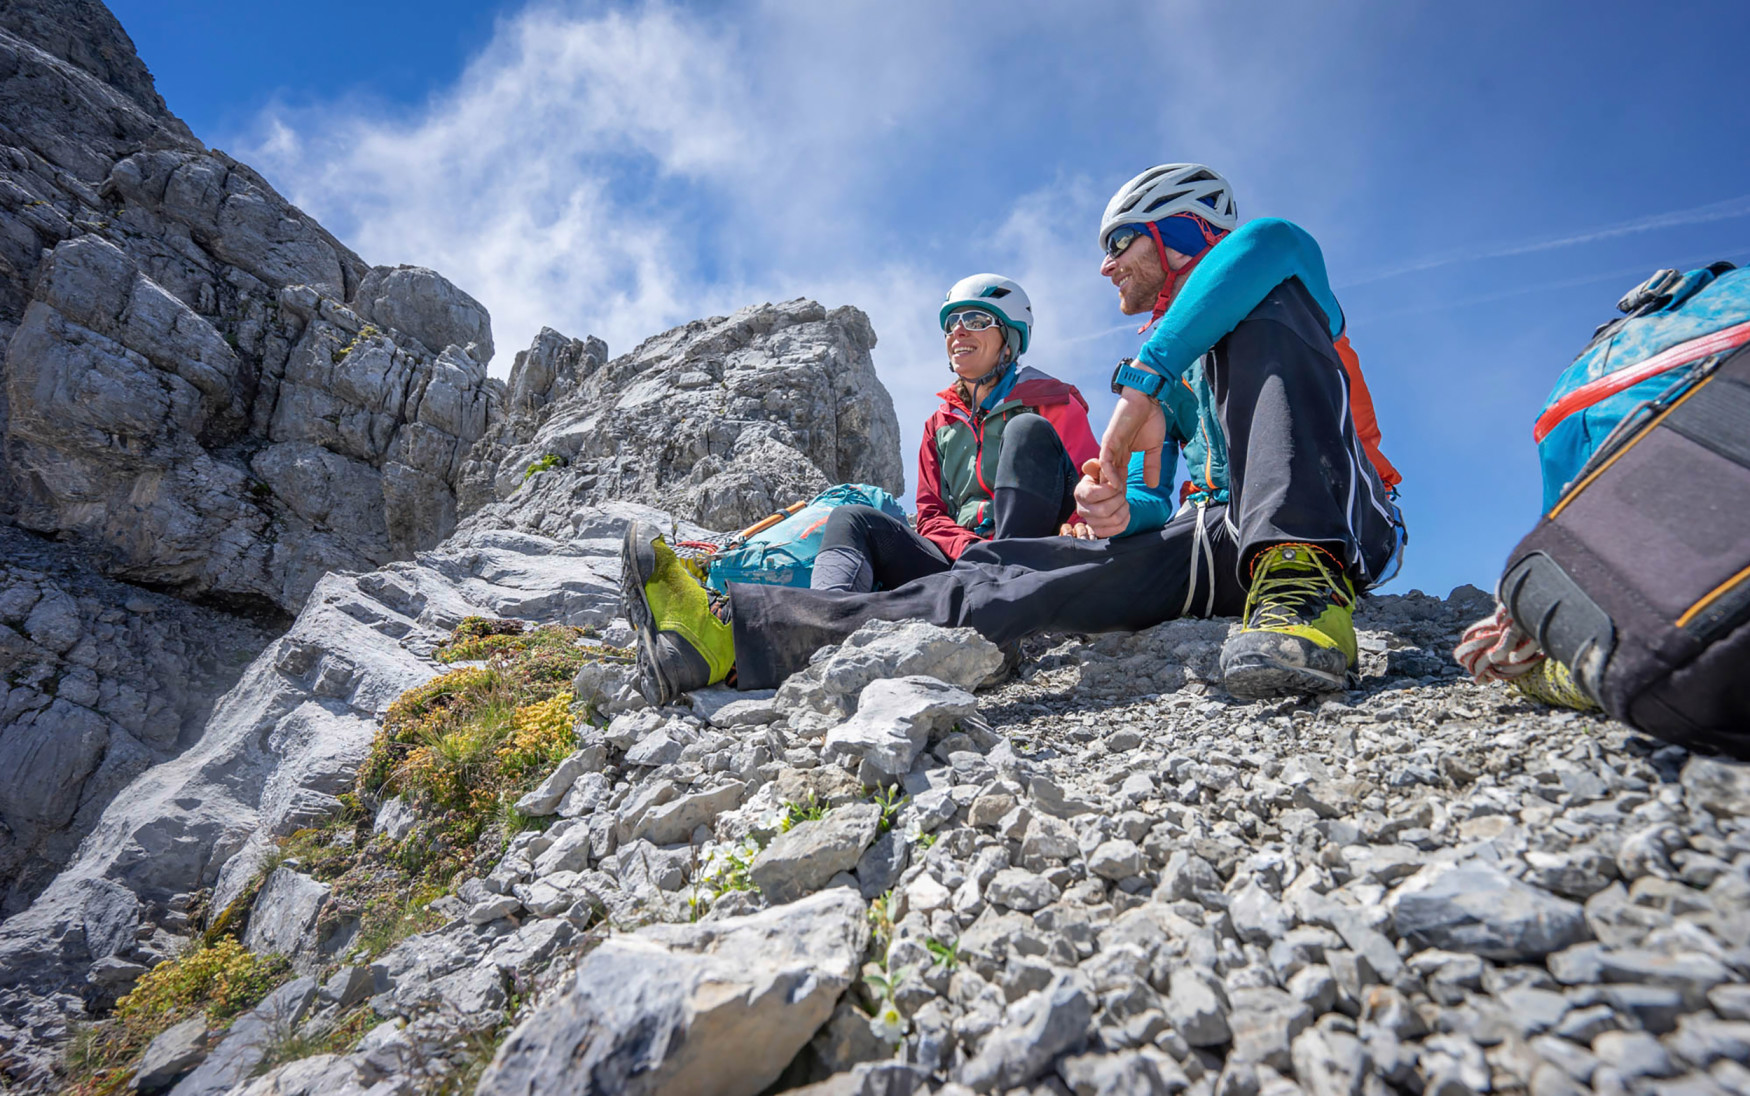 The anatomy of the female foot creates some very special requirements. LOWA has explored this issue and developed the TIBET LL Ws, a robust trekking boot for women that performs exceptionally well on via ferrata, multiday tours in the Alps and especially challenging trails.